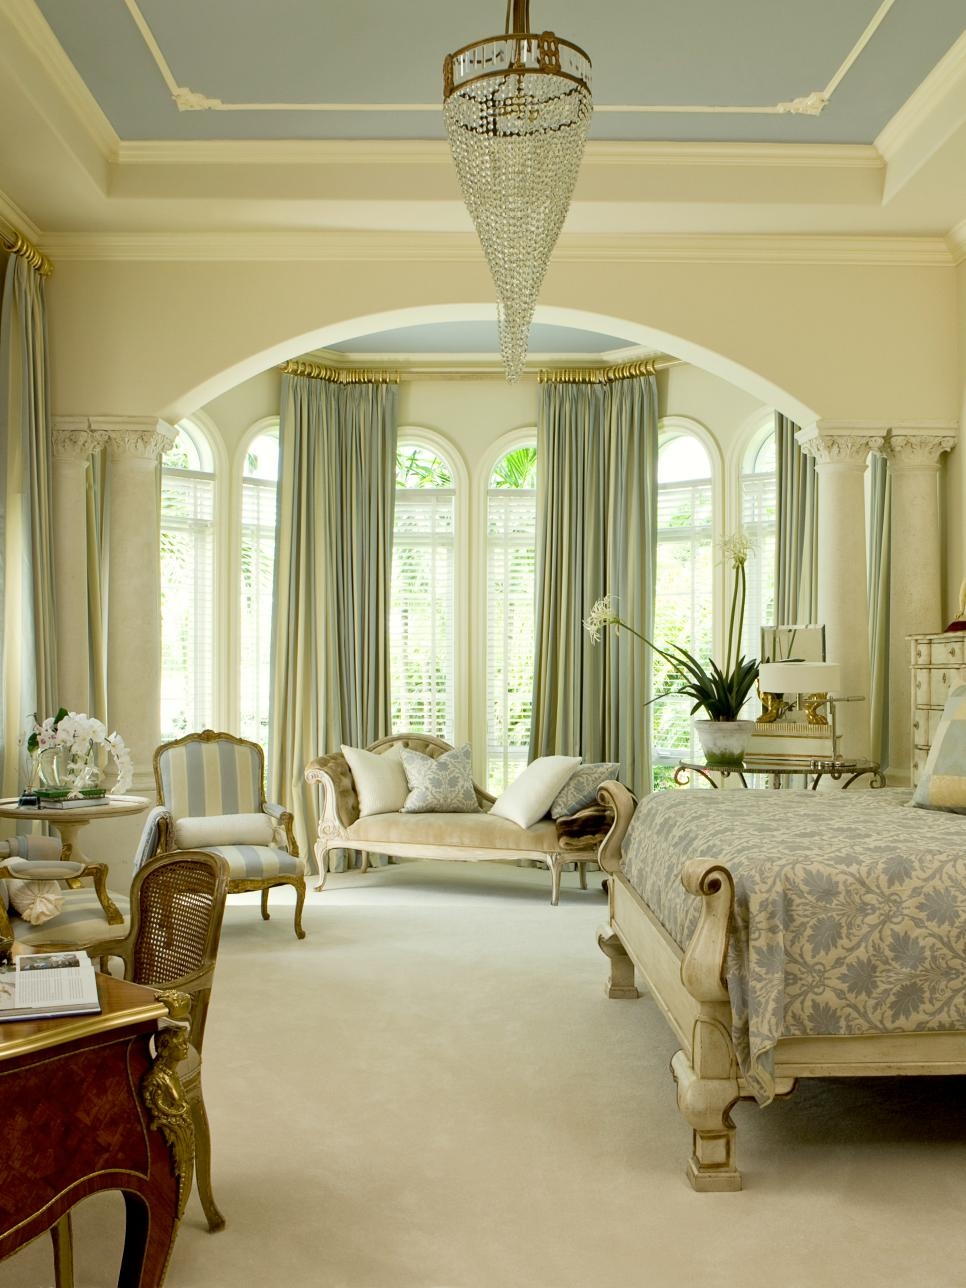 8 Window Treatment Ideas for Your Bedroom HGTV